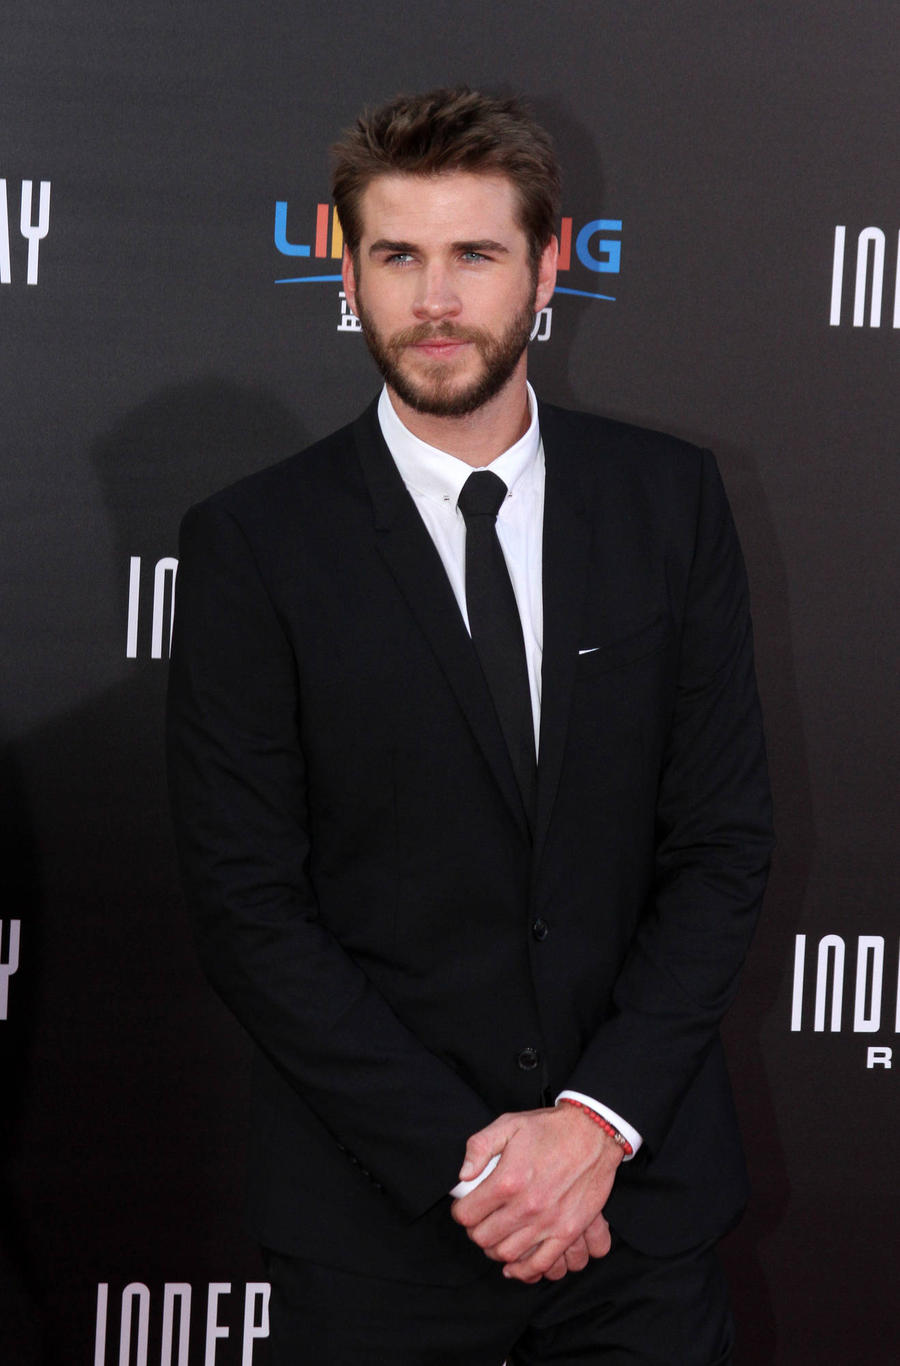 Liam Hemsworth And Miley Cyrus Make Reunion Official On Instagram